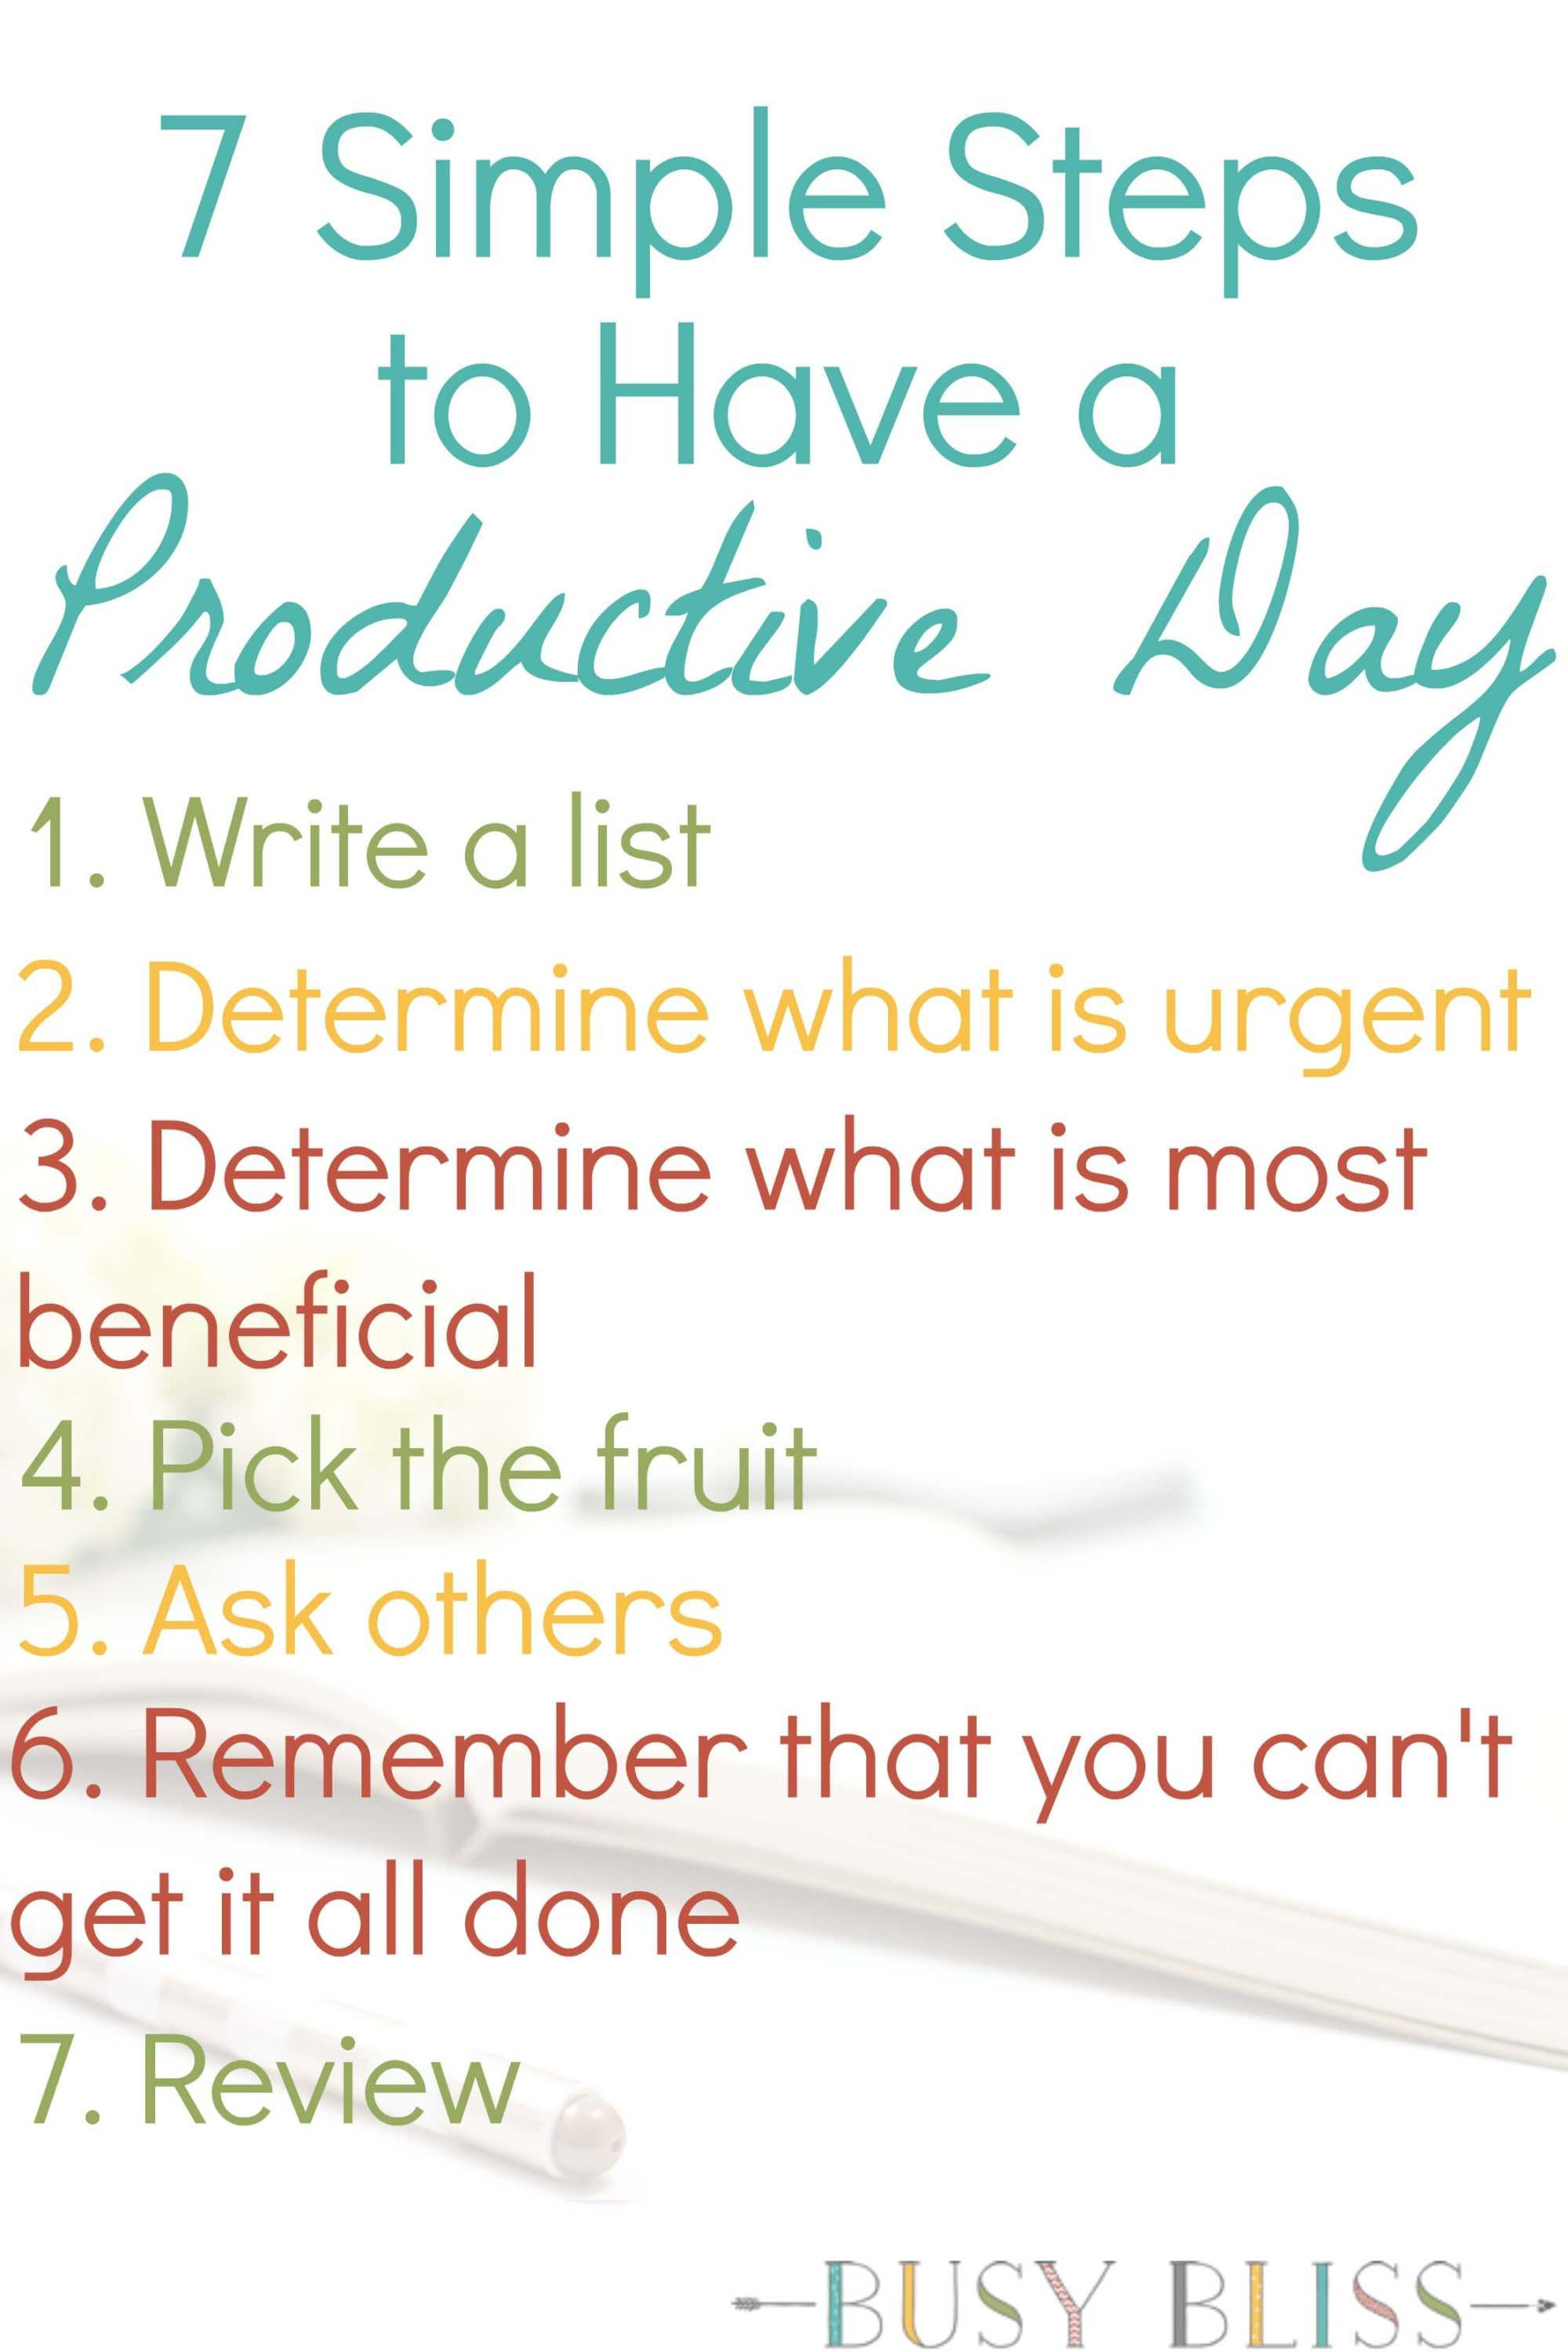 7 Simple Steps to Have a Productive Day Time management